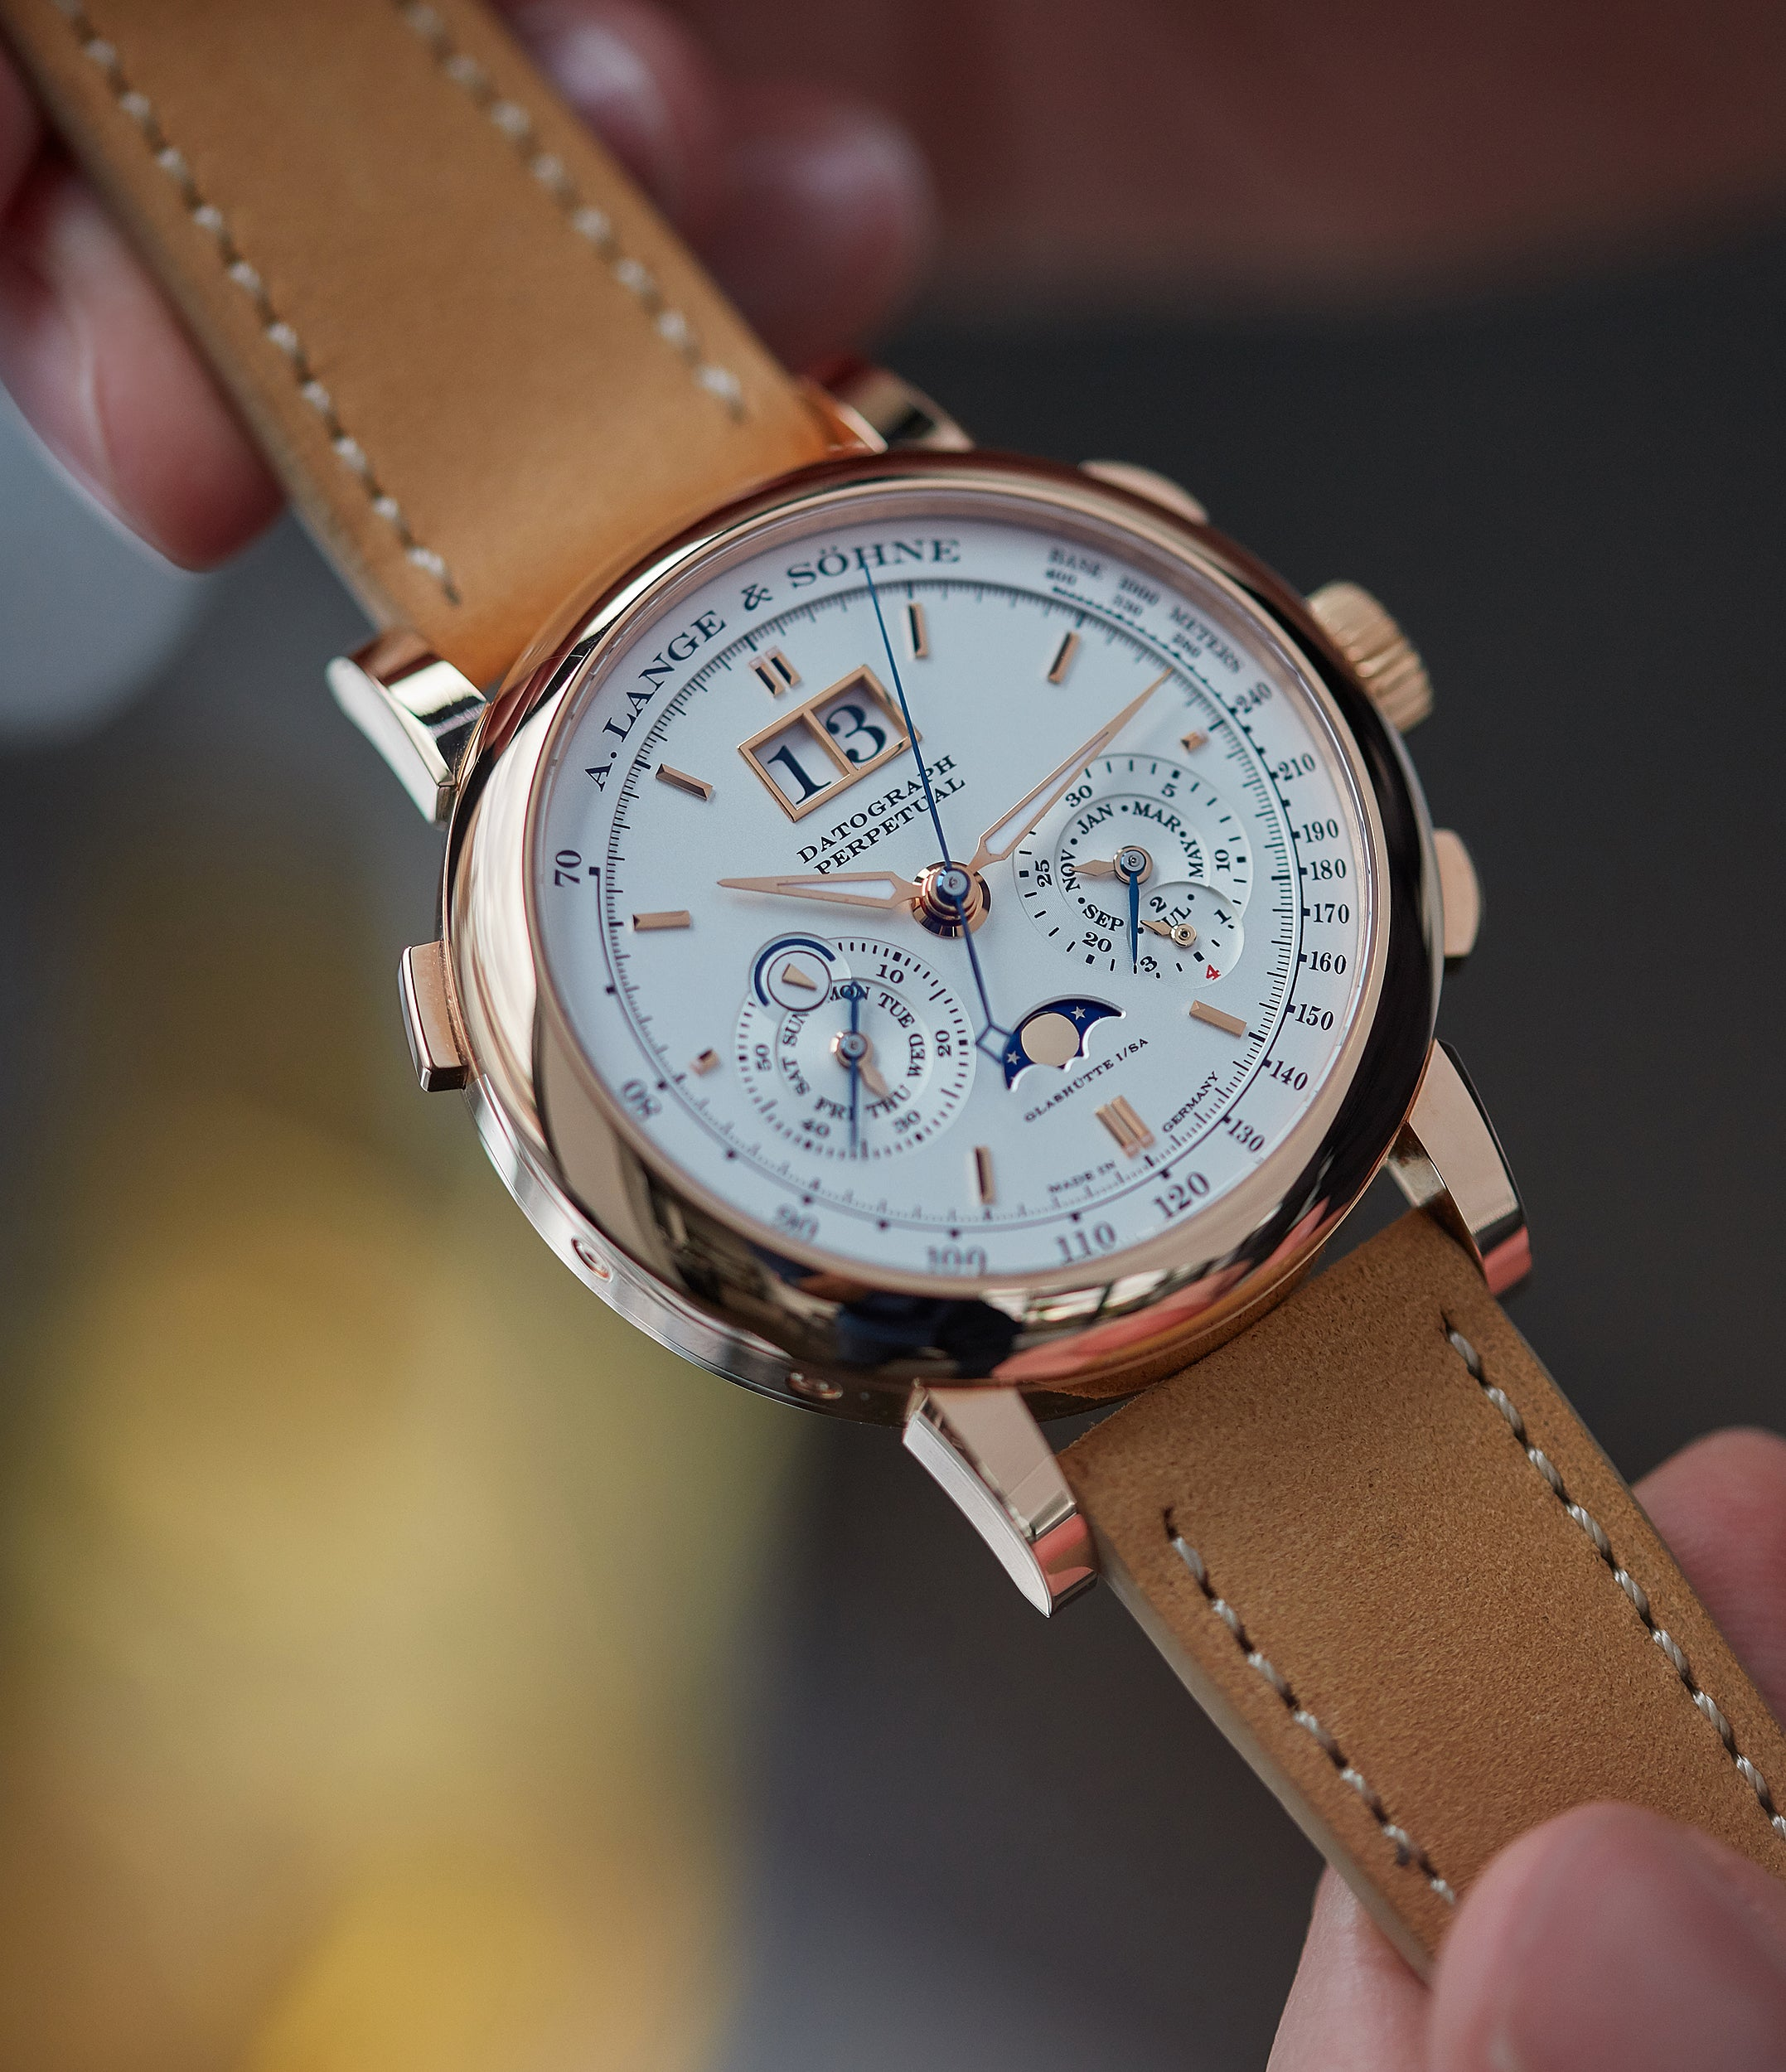 Datograph Lange & Sohne Perpetual Calendar 410.032 pink gold pre-owned dress watch for sale online at A Collected Man London seller rare watches